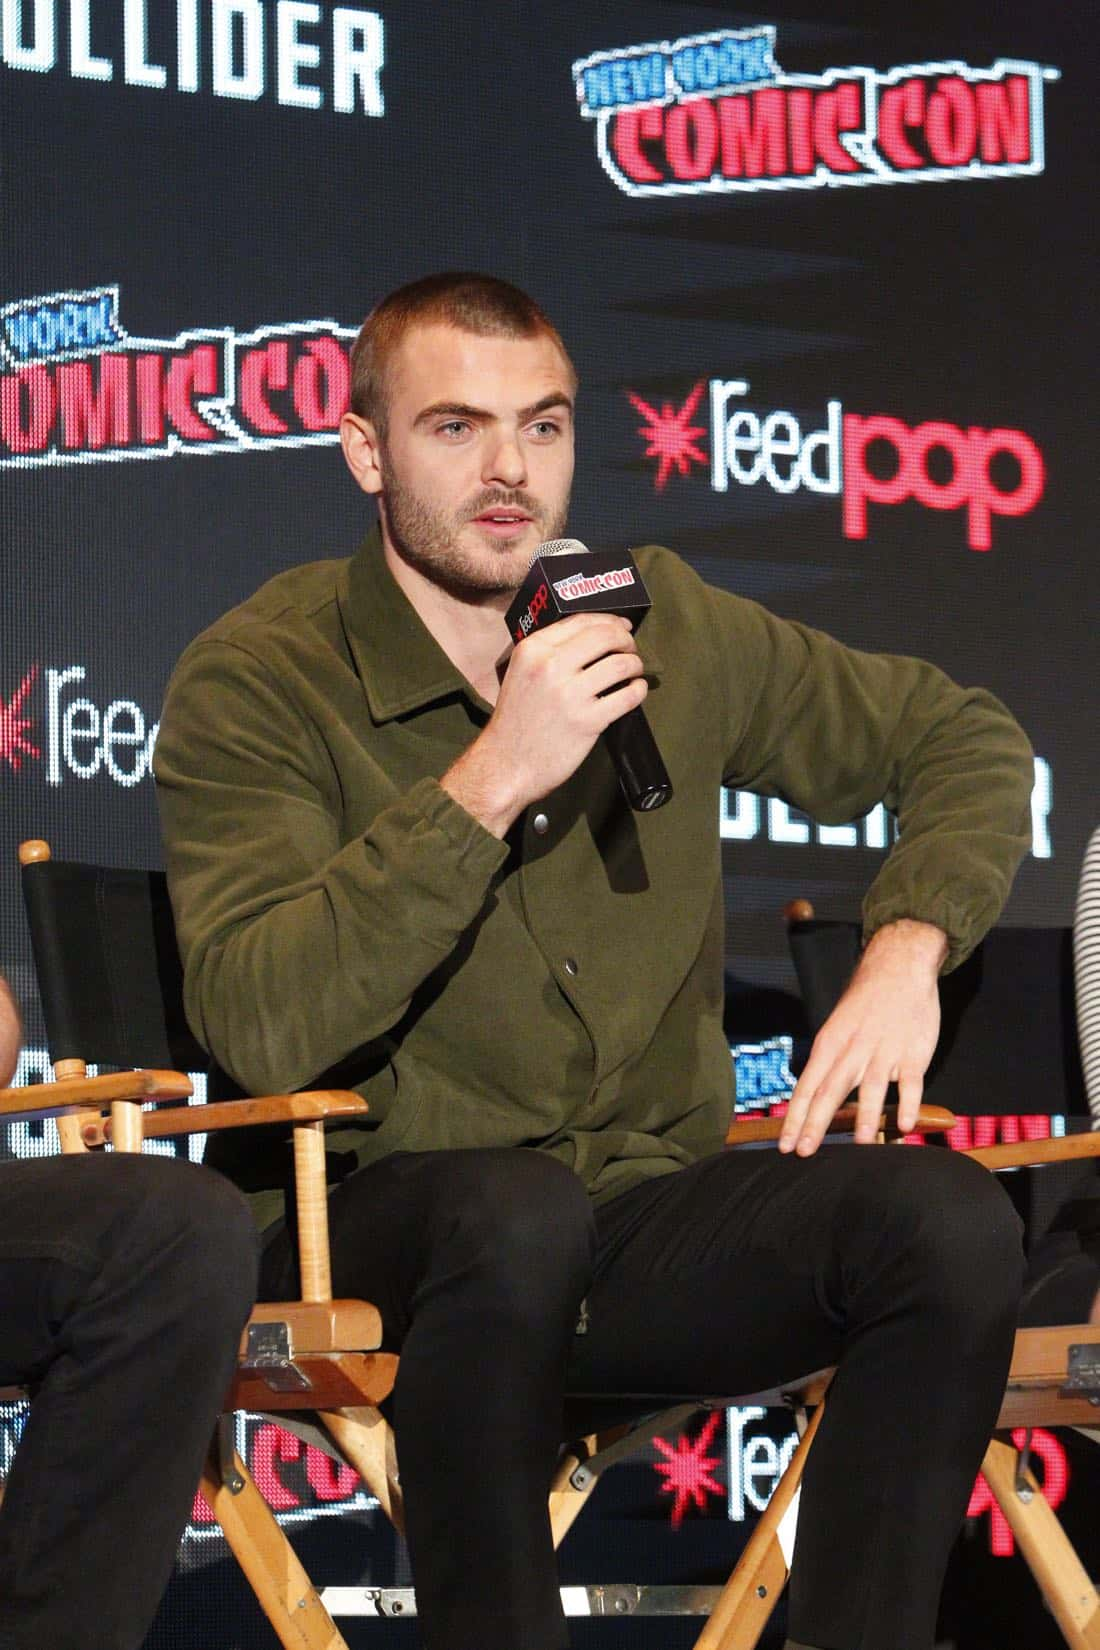 """NY COMIC-CON 2017 - SIREN - Freeform's genre programming was out in full force at this year's New York Comic Con on Saturday, October 7th with executive producers and cast from the hit series """"Shadowhunters,"""" """"Beyond,"""" and new original series """"Siren."""" (Freeform/Lou Rocco) ALEX ROE"""